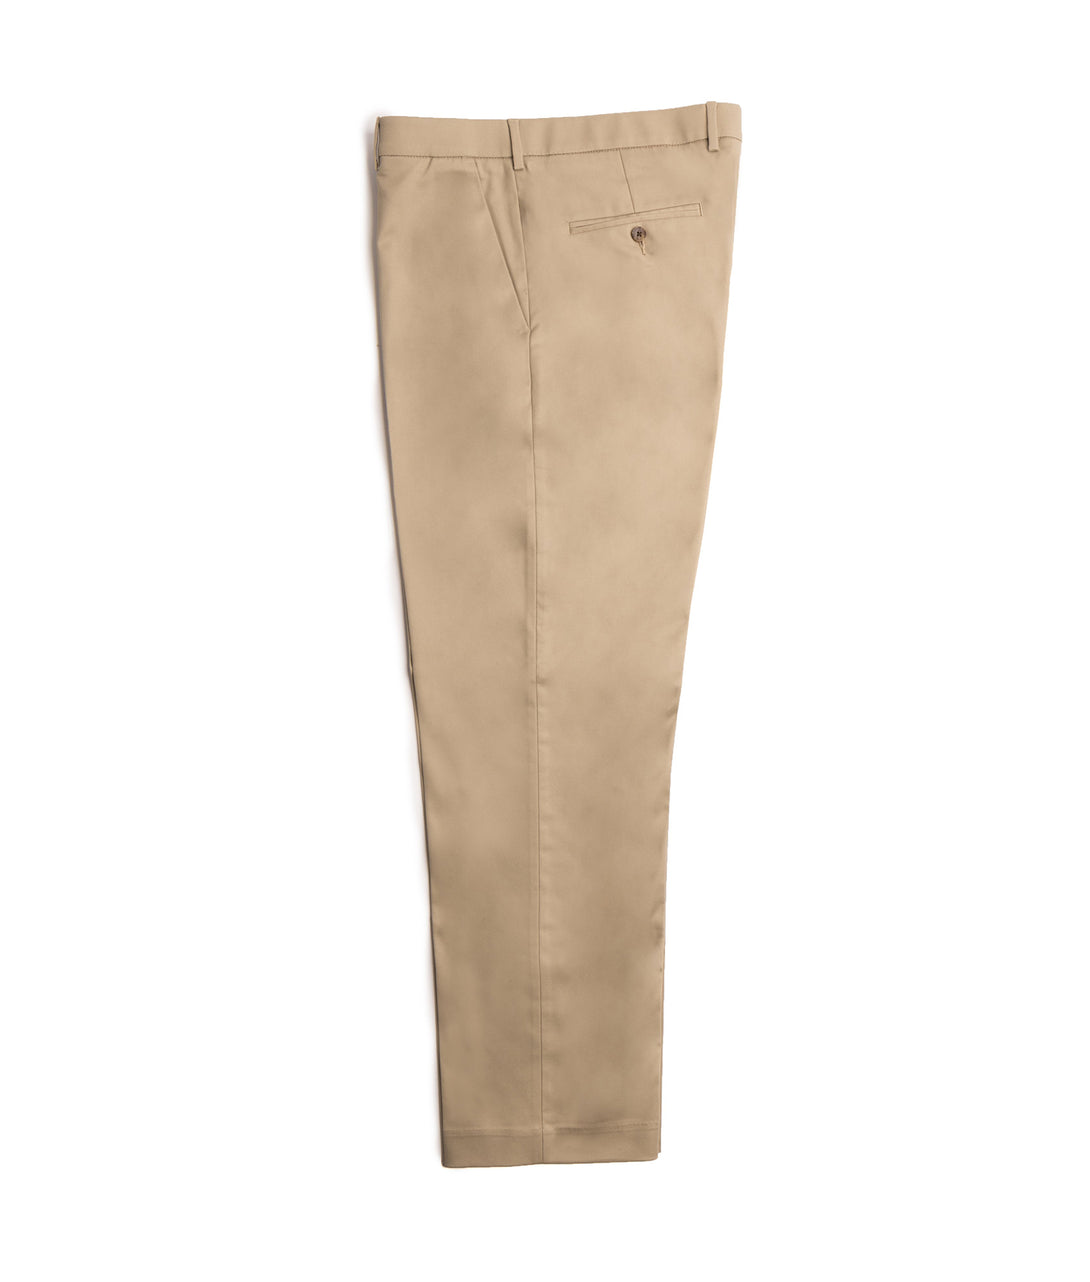 Khaki Traditional Twill Flat Front Chino Pant with Magnetic Fly | JUNIPERunltd